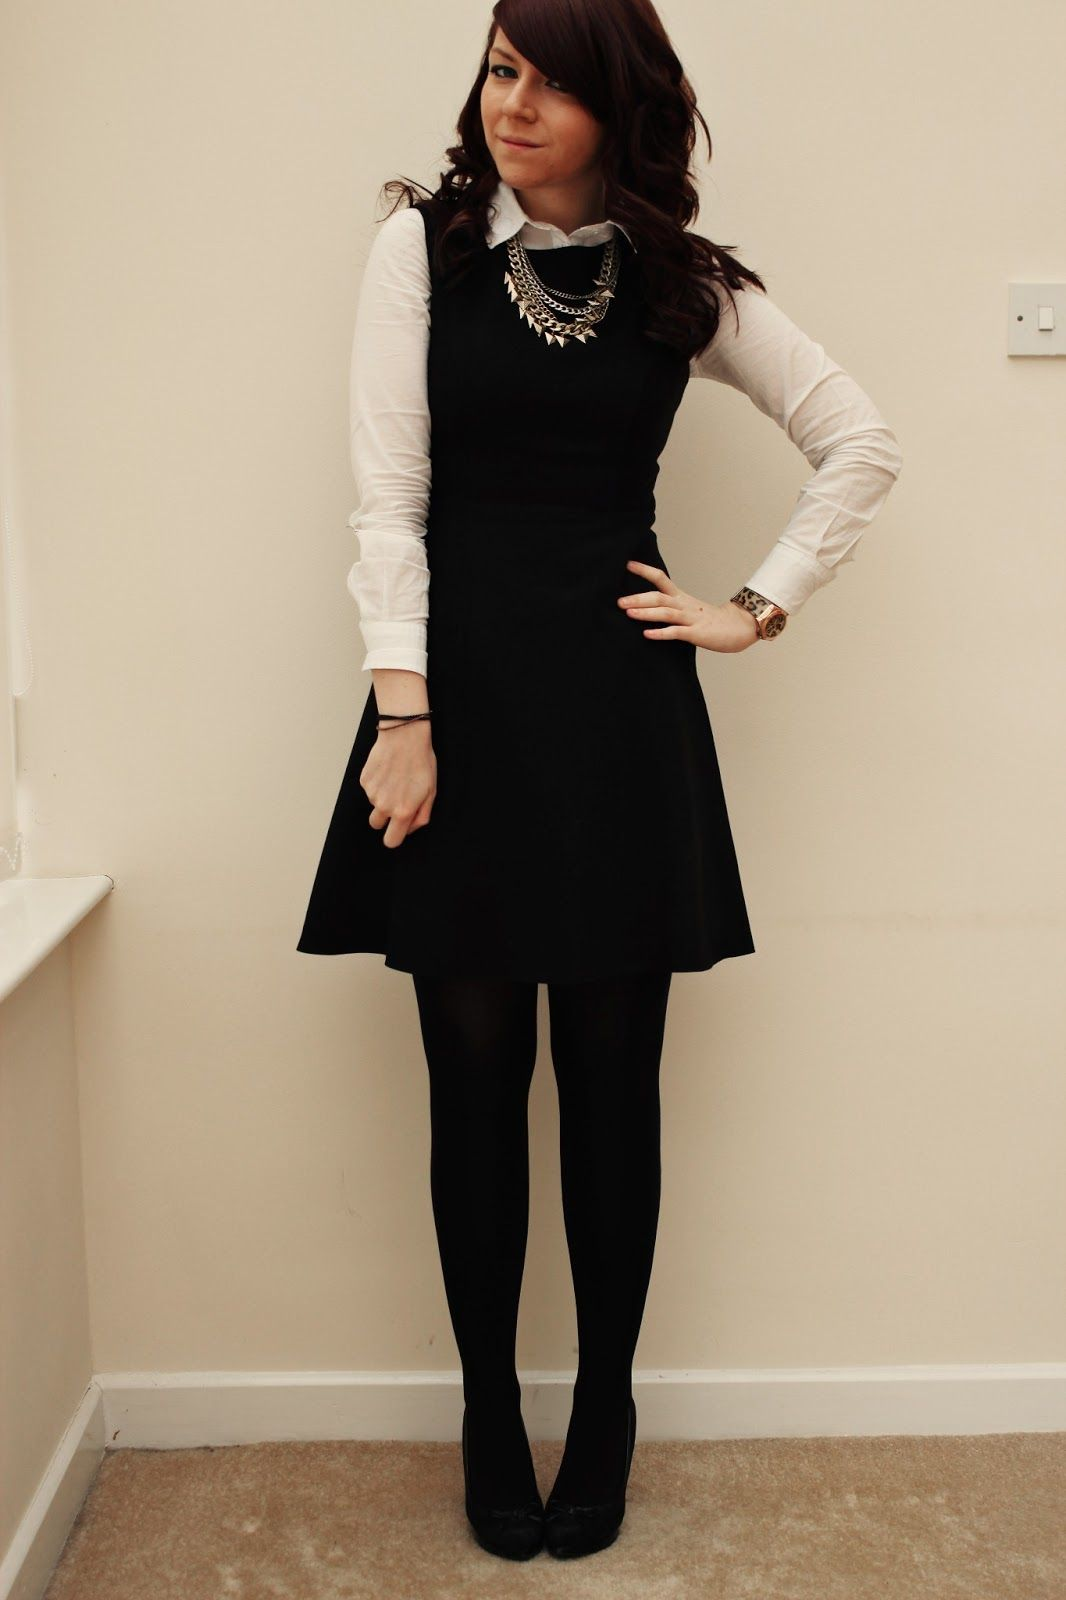 Cute Work Wear That Isnu0026#39;t Old Looking. Button Up Under Sleeveless Dress With Tights # ...